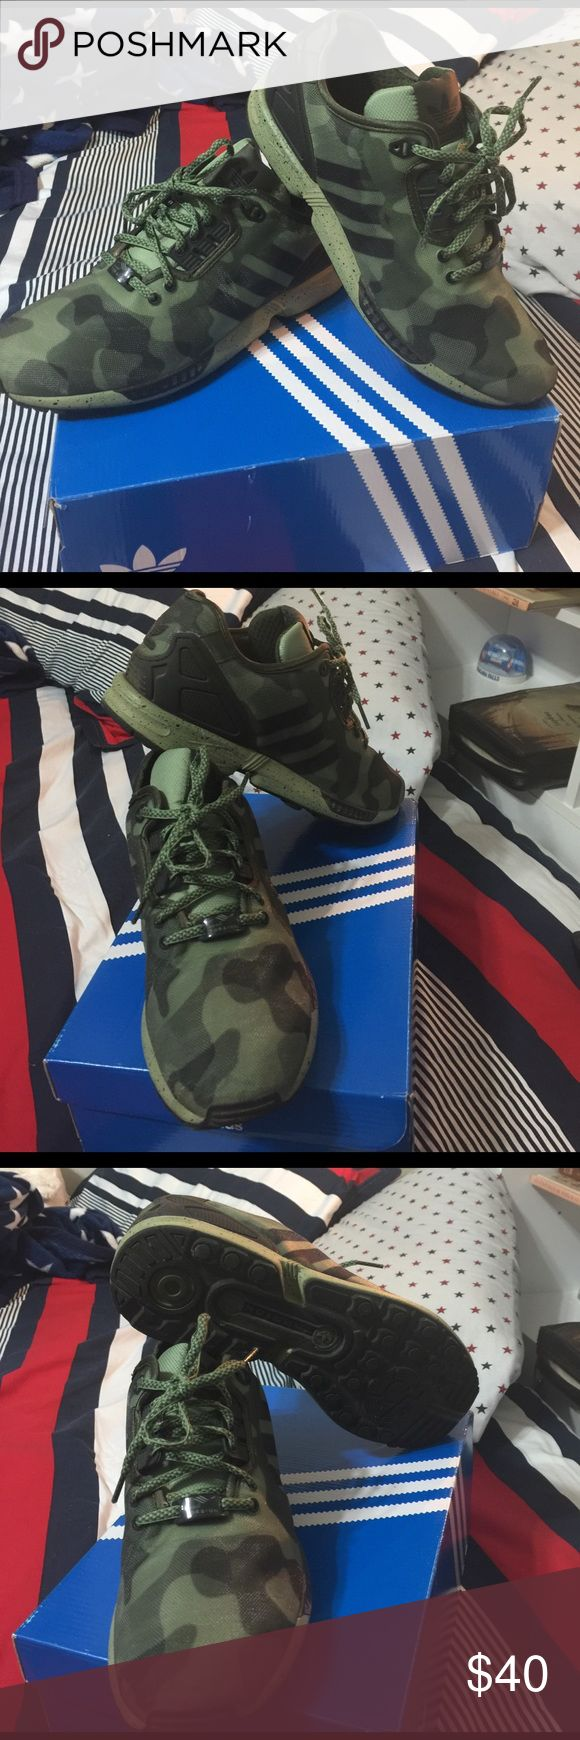 ADIDAS CAMO SNEAKERS SIZE 9 NICE CAMO SNEAKERS ADIDAS MENS SIZE 9 BEAUTIFUL CONDITION Adidas Shoes Sneakers